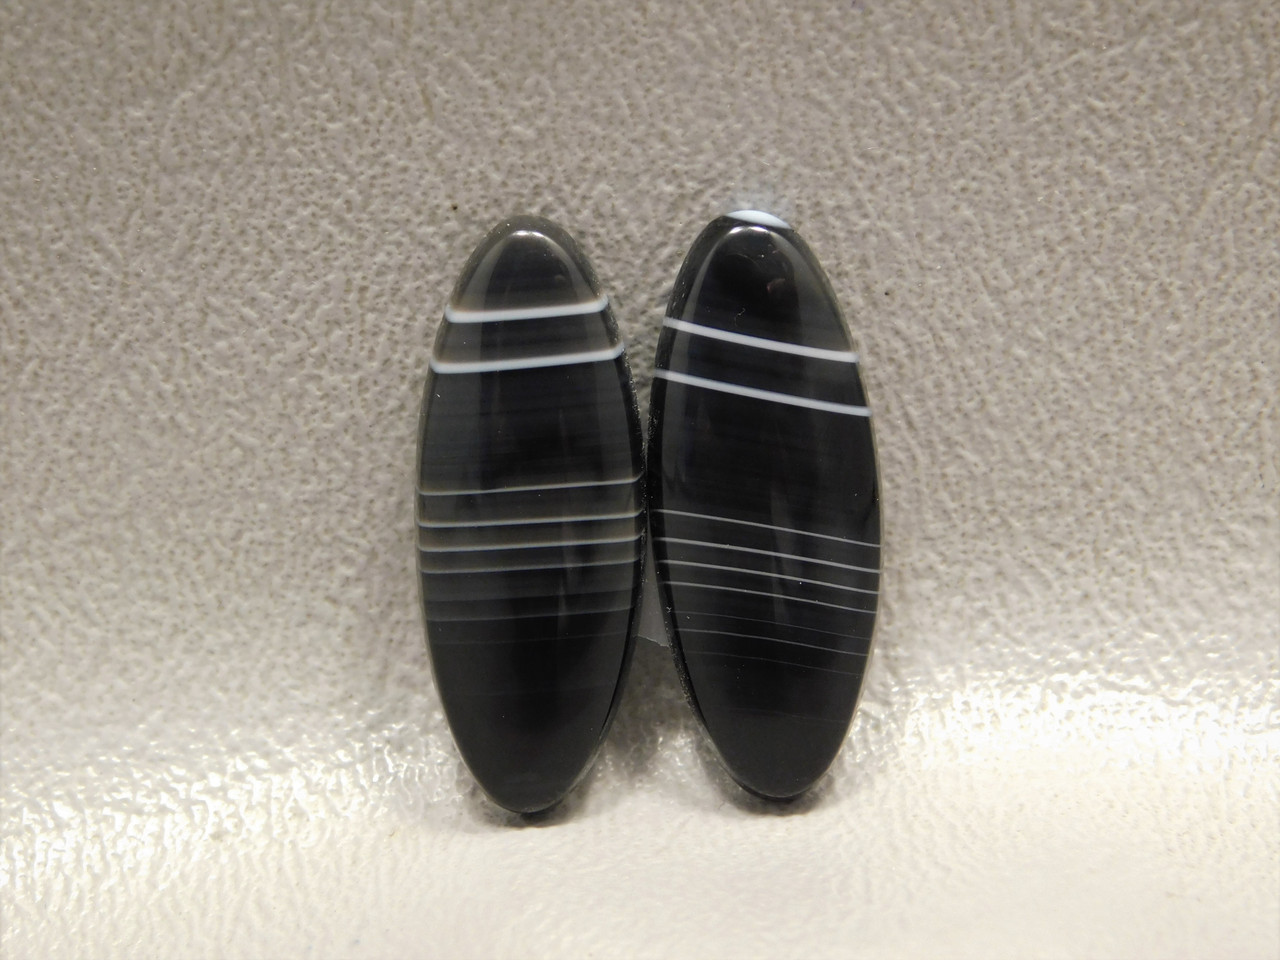 Cabochons Black and White Tuxedo Agate Matched Pair Stones #23